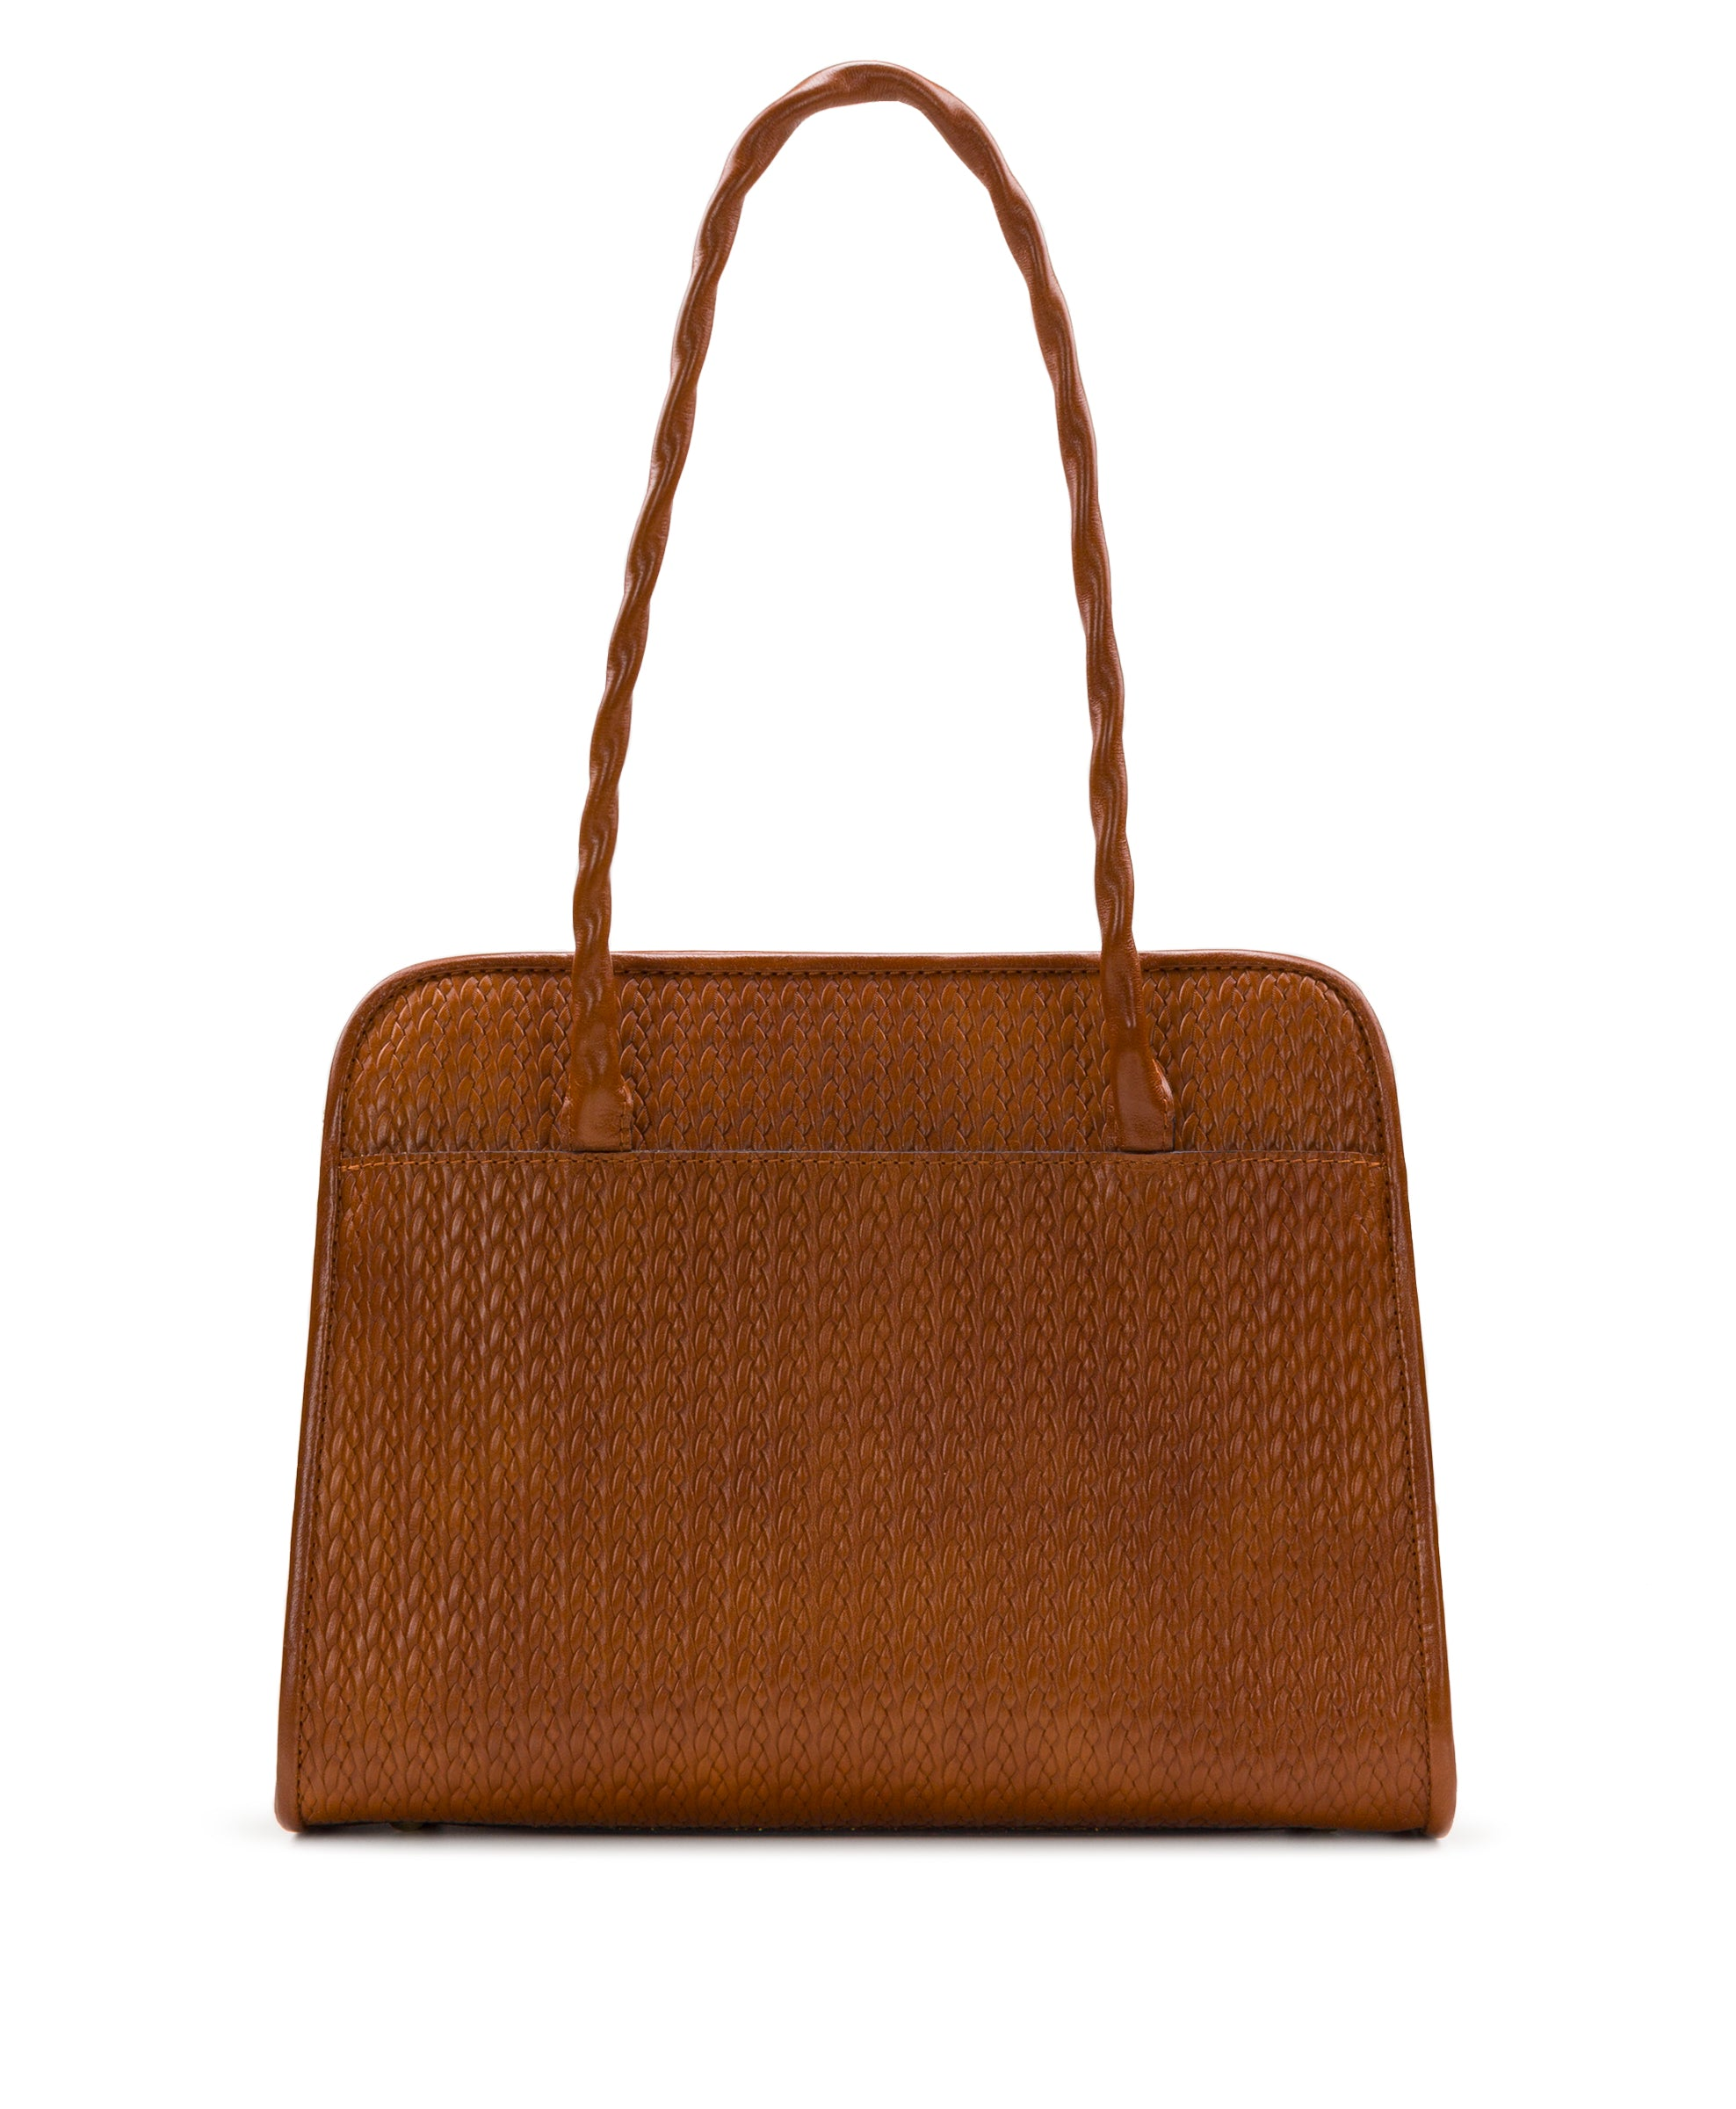 Paris Large Satchel - Twisted Woven Embossed 2